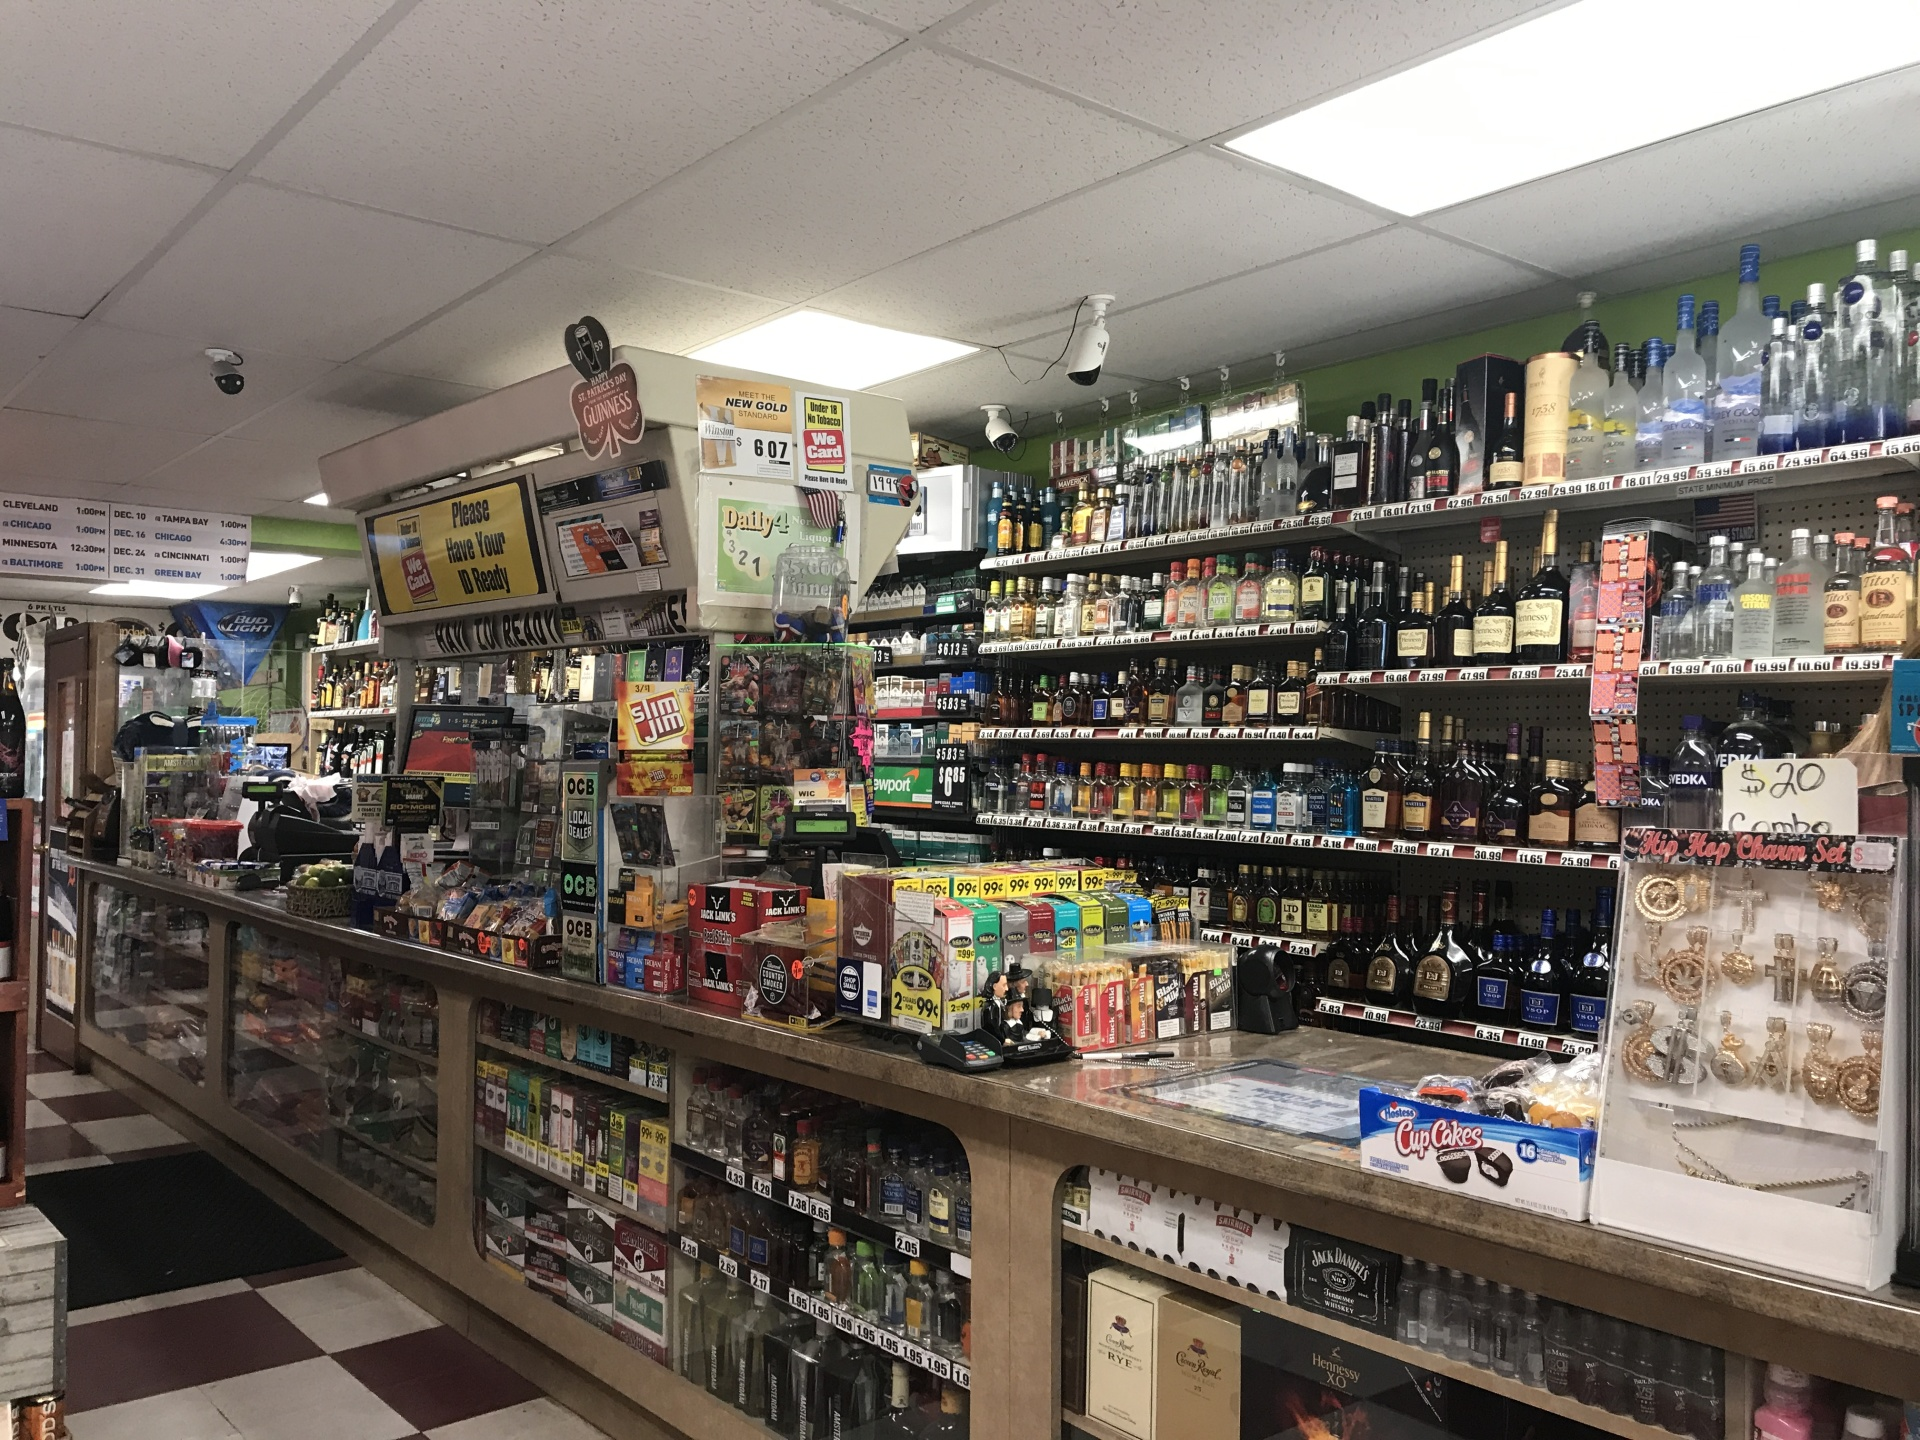 Busy Liquor Store in Growing GR Area